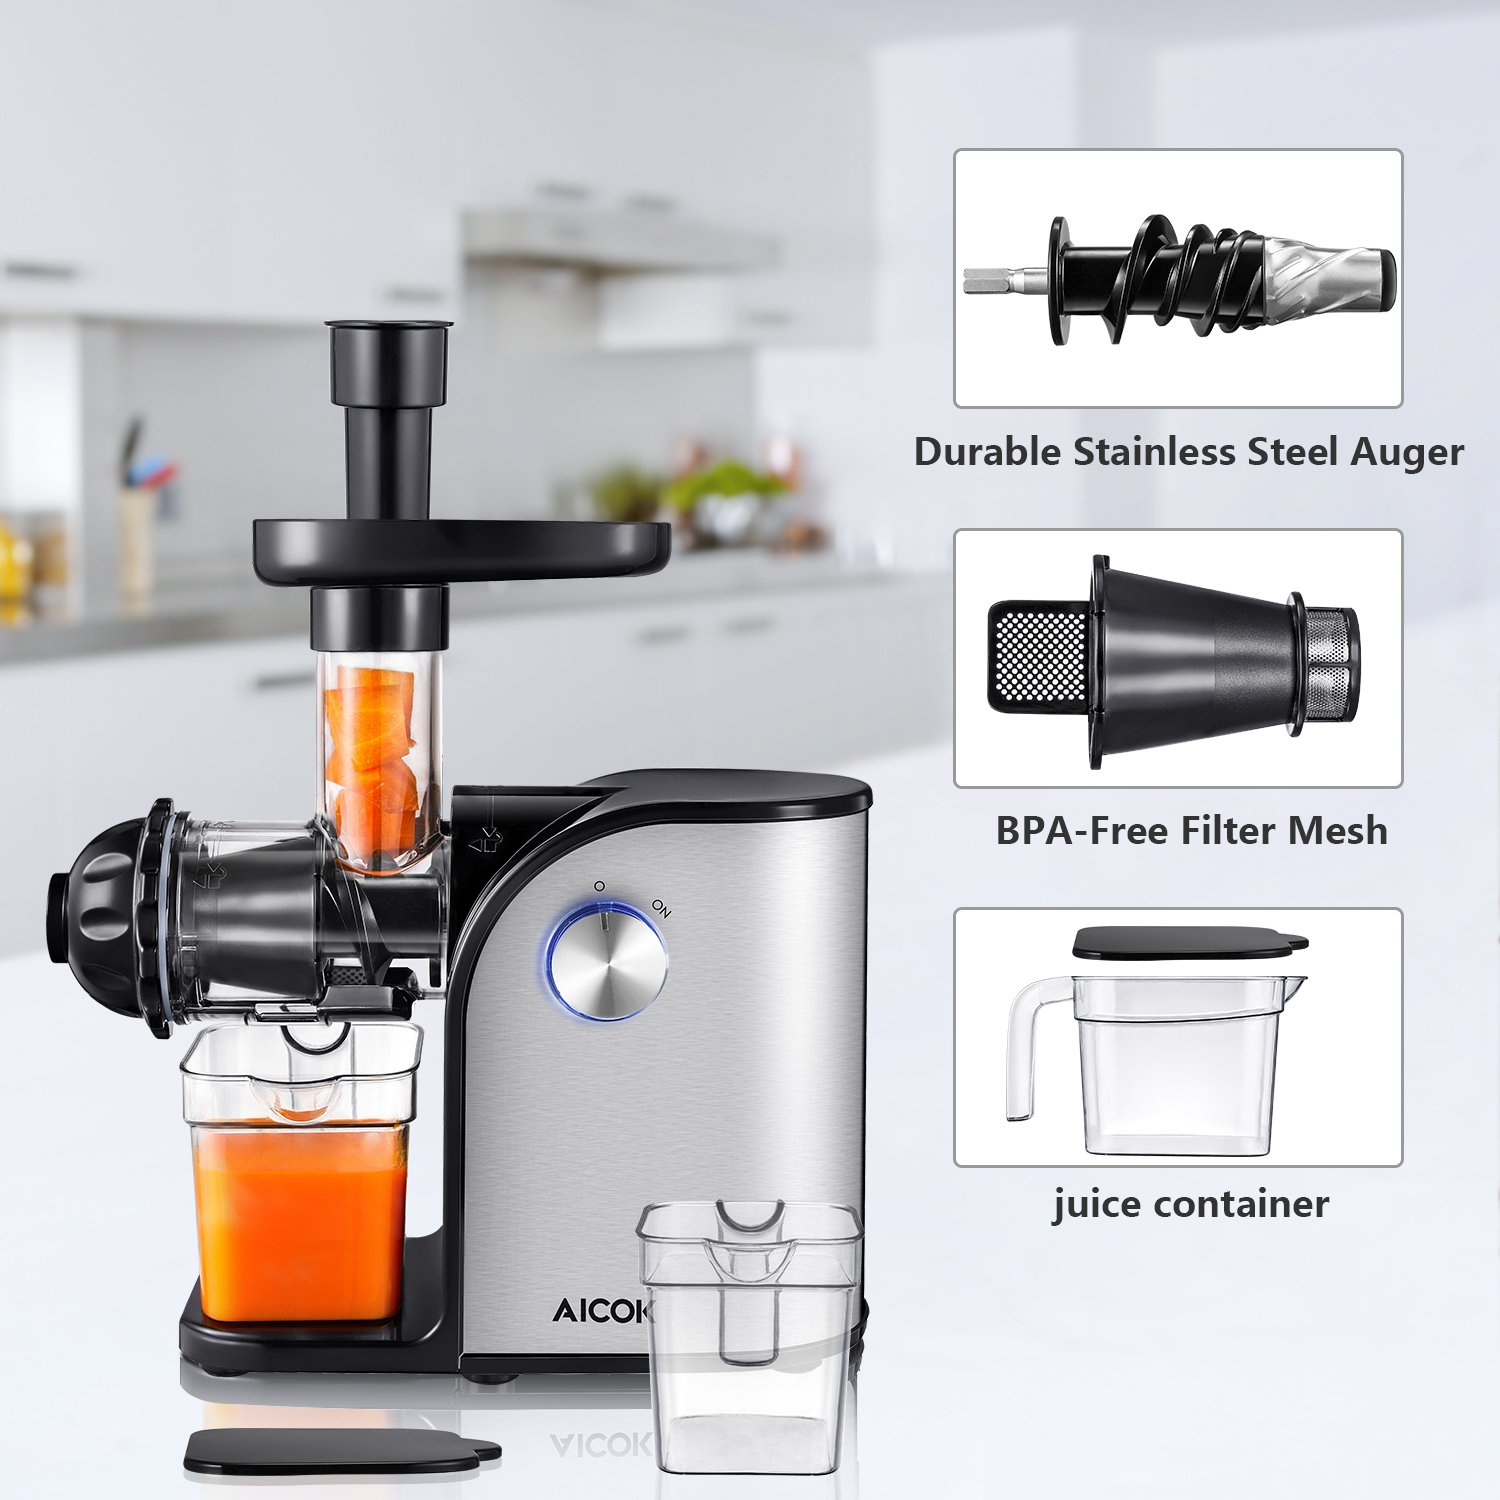 Aicok Slow Masticating juicer, Cold Press Juice Extractor, Stainless Steel, Quiet Motor, High Nutrient Fruit and Vegetable Juice, Black by AICOK (Image #7)